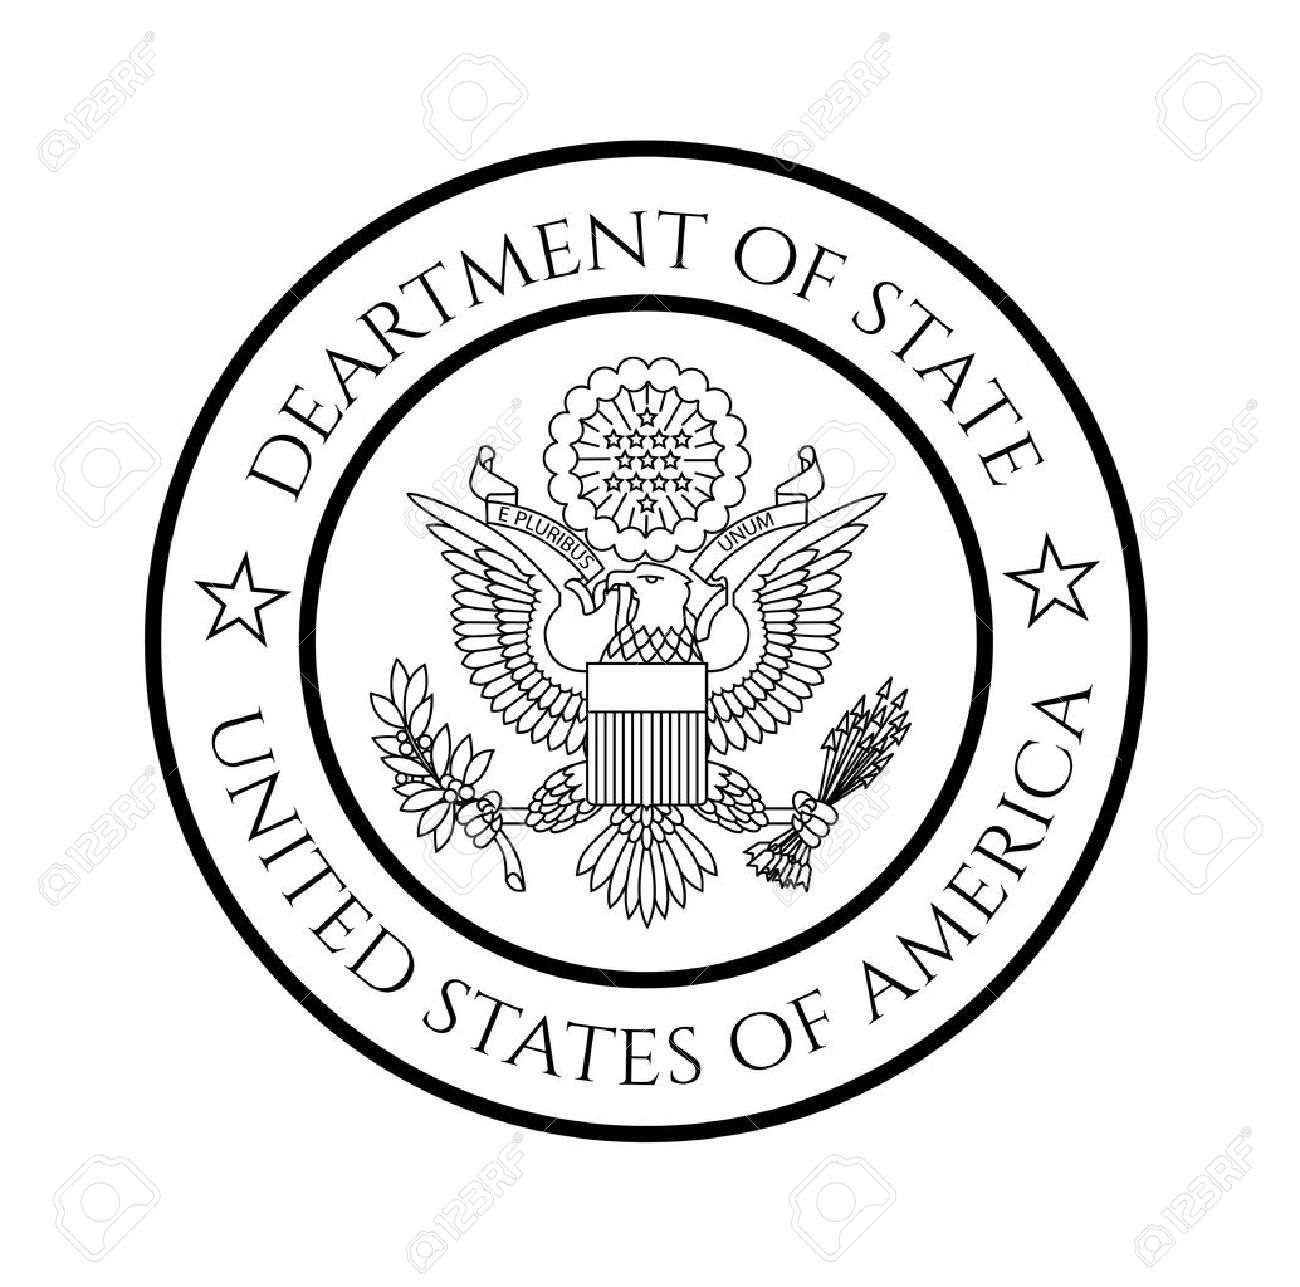 US department of state seal, black on white. - 44063866